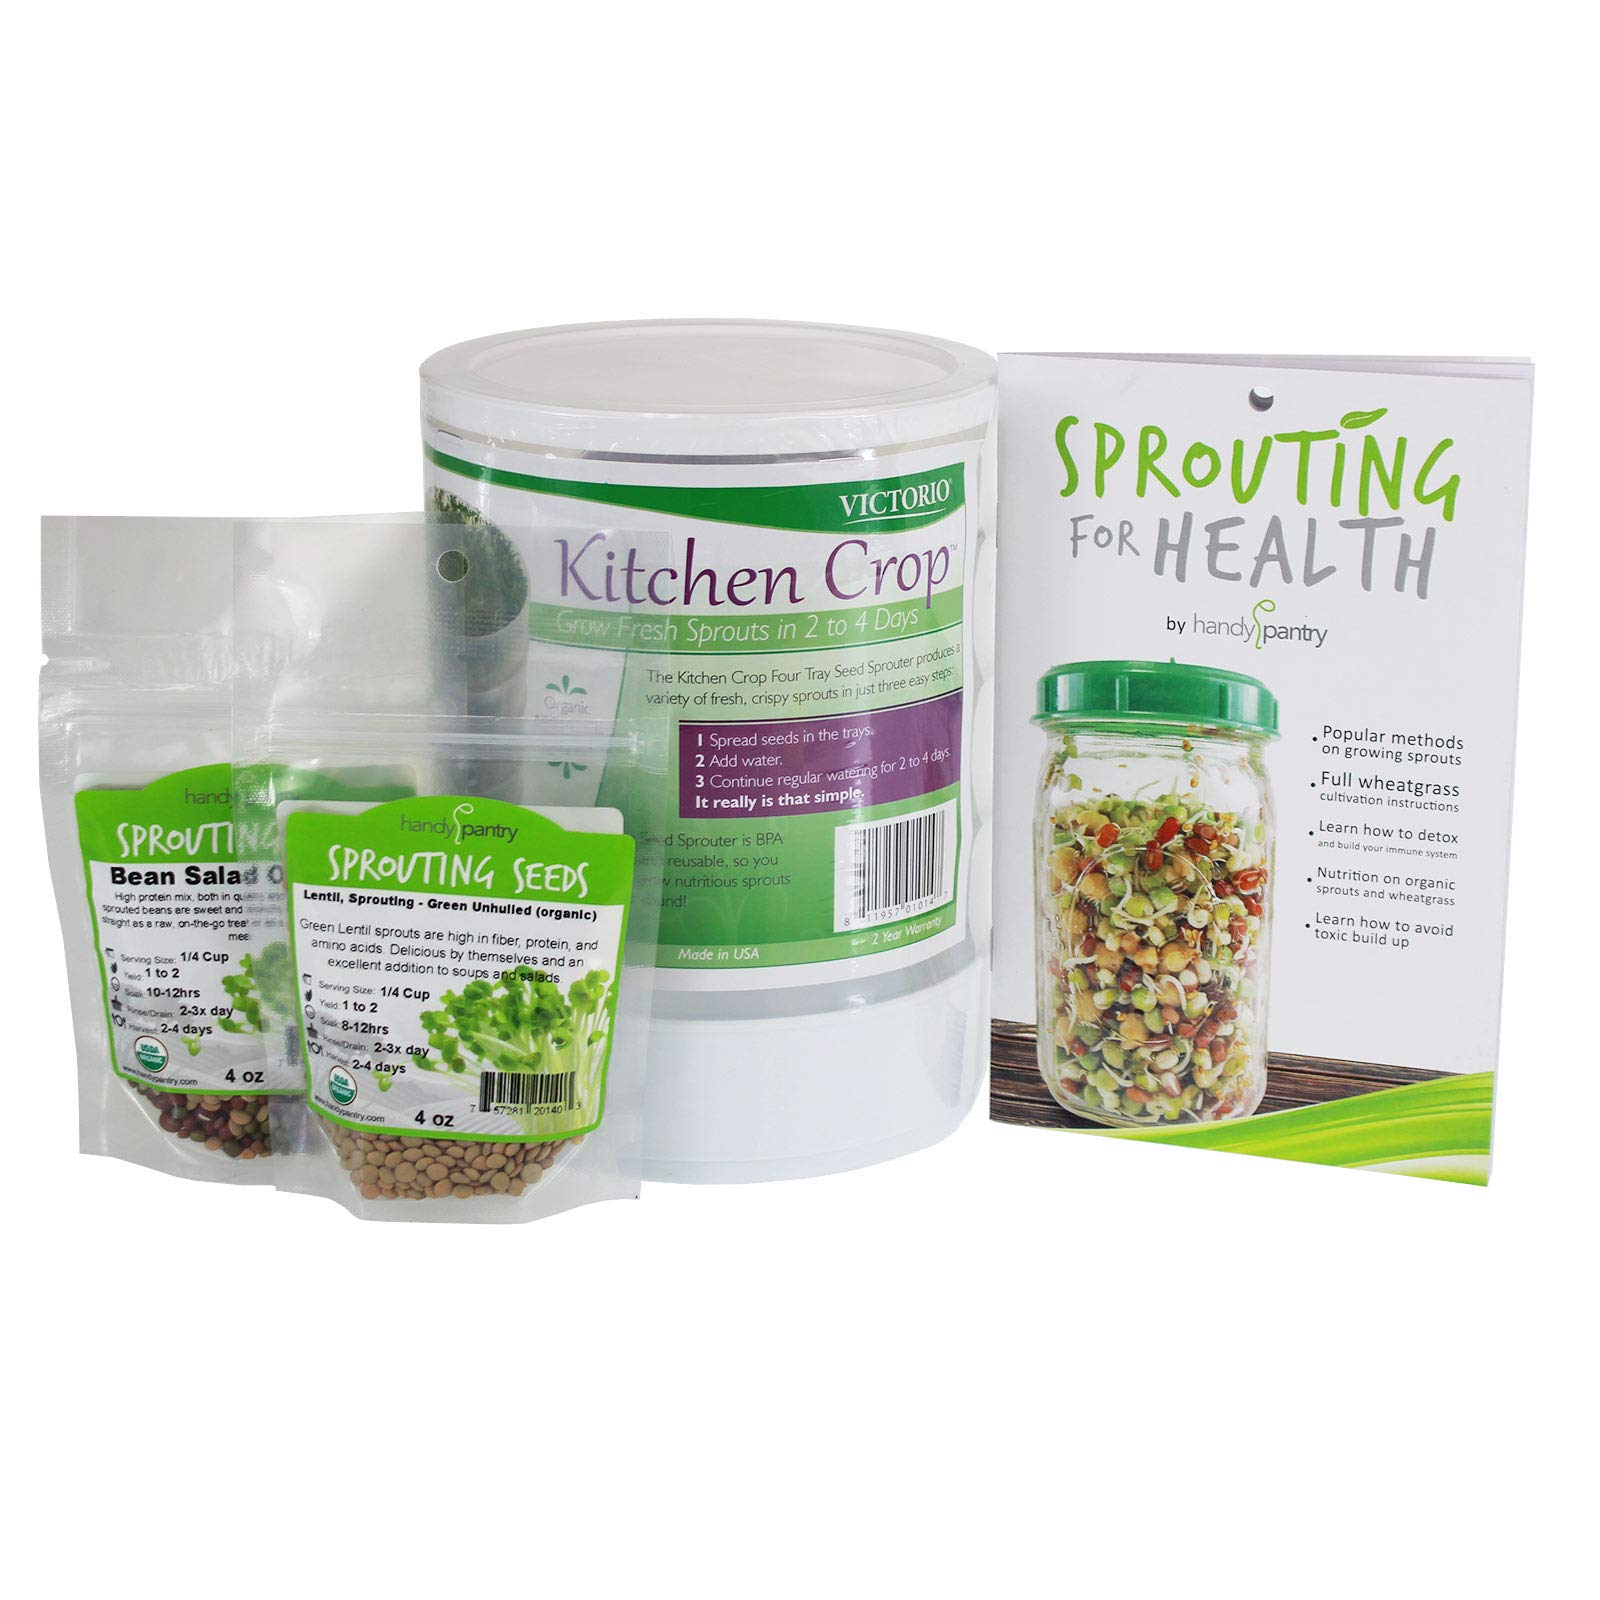 Kitchen Crop Sprouting Kit | Includes Victorio 4 Tray Sprouter, Sprouting Book, Organic Alfalfa, Lentil & Bean Salad Sprout Mix | Makes Over 3 Lbs Of Sprouts by Handy Pantry